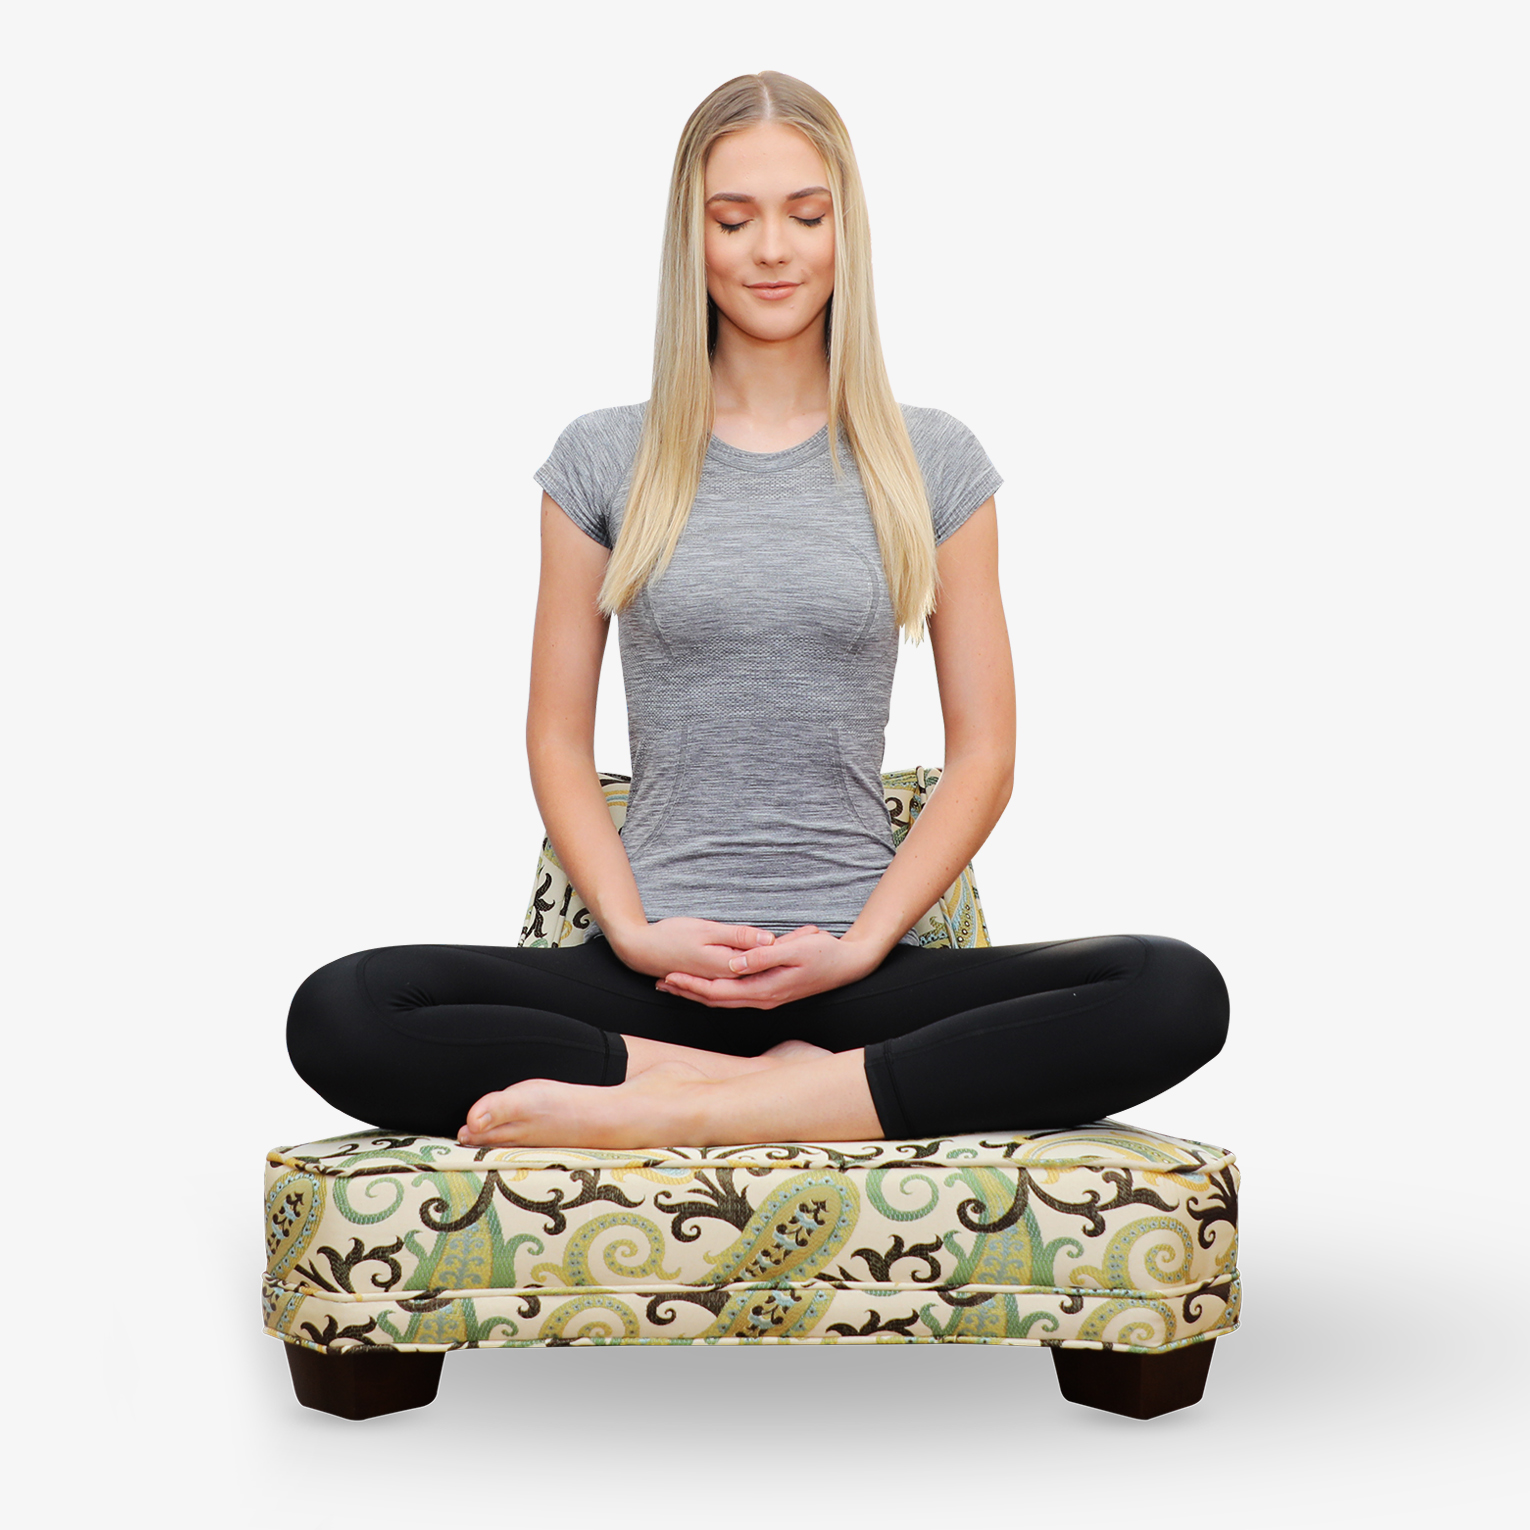 A woman meditating in the full lotus pose on The Samurai Meditation Chair.